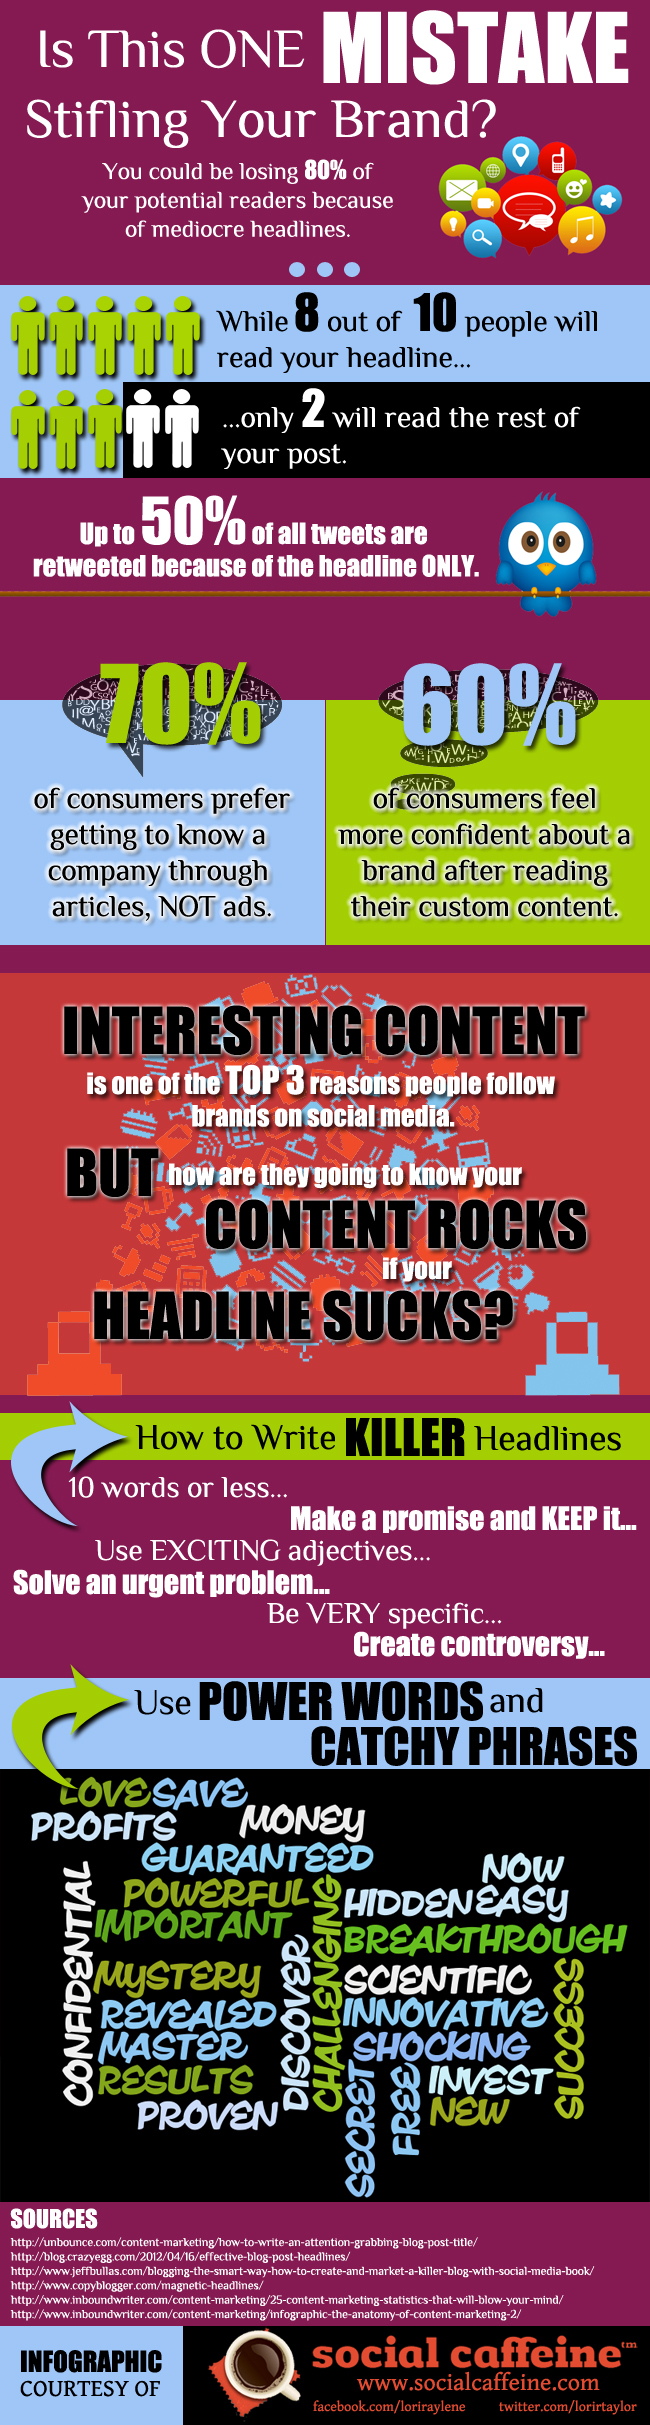 Is This ONE Mistake Stifling Your Brand? (Infographic) - it's all in your HEADline